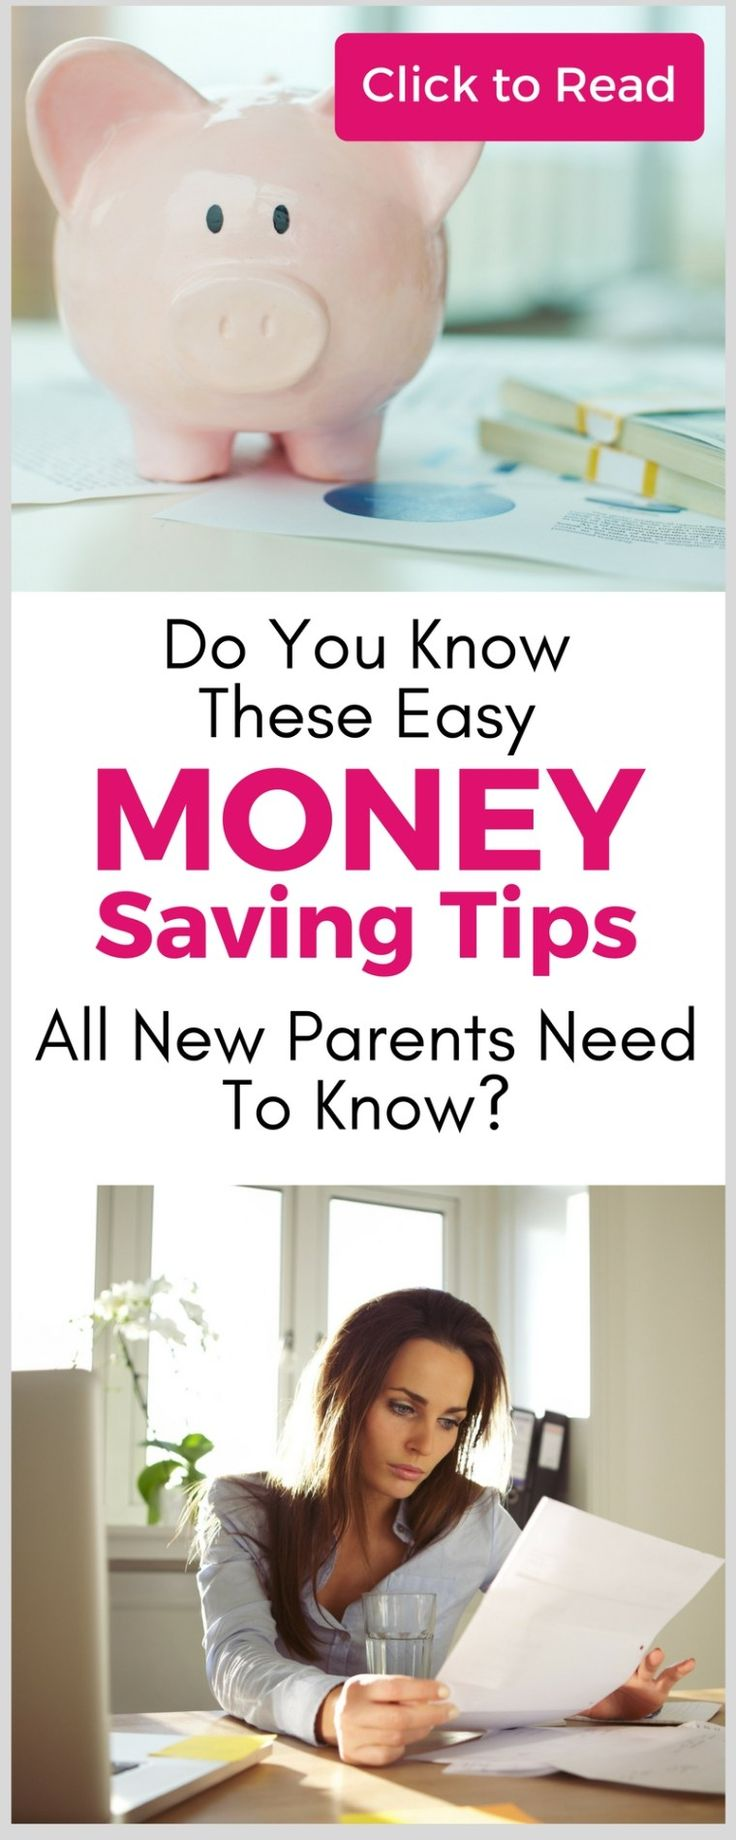 Money saving tips for new baby! Expecting? Read this post!